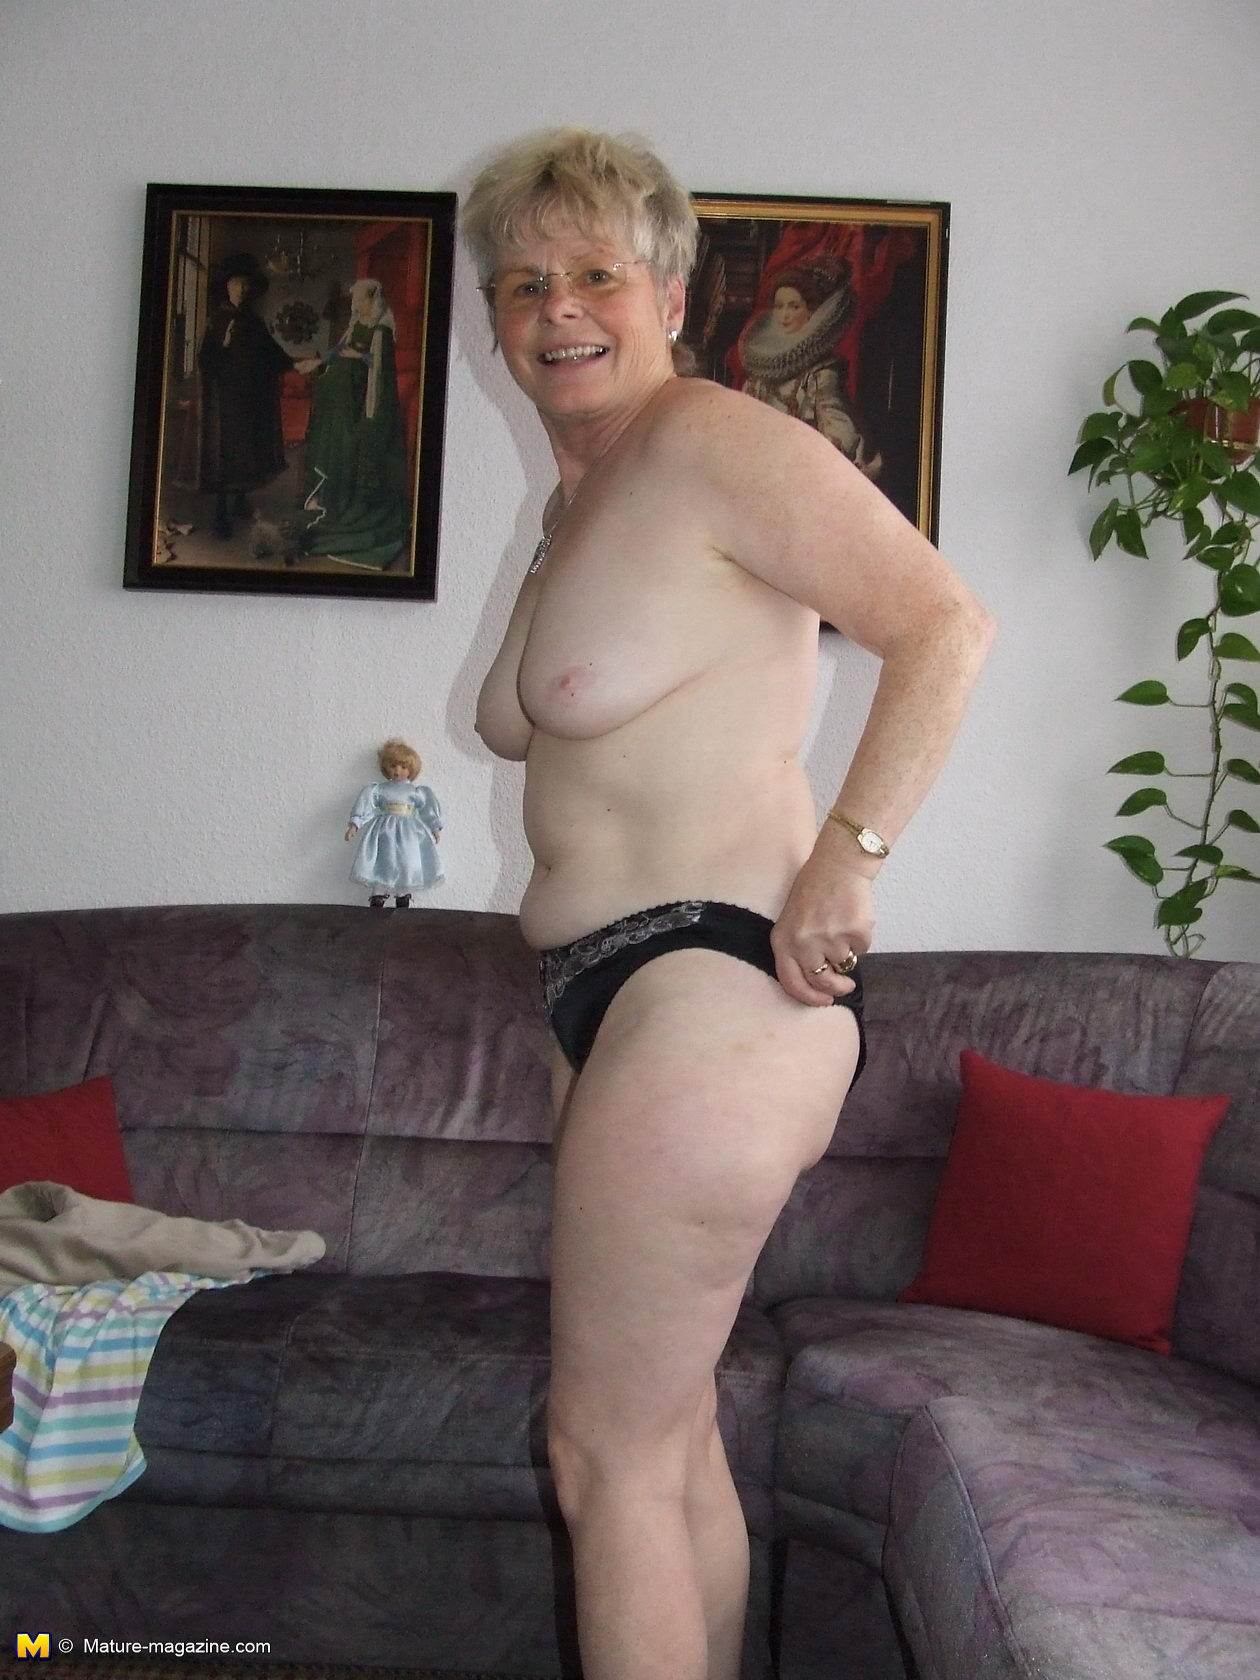 Naked body showing granny